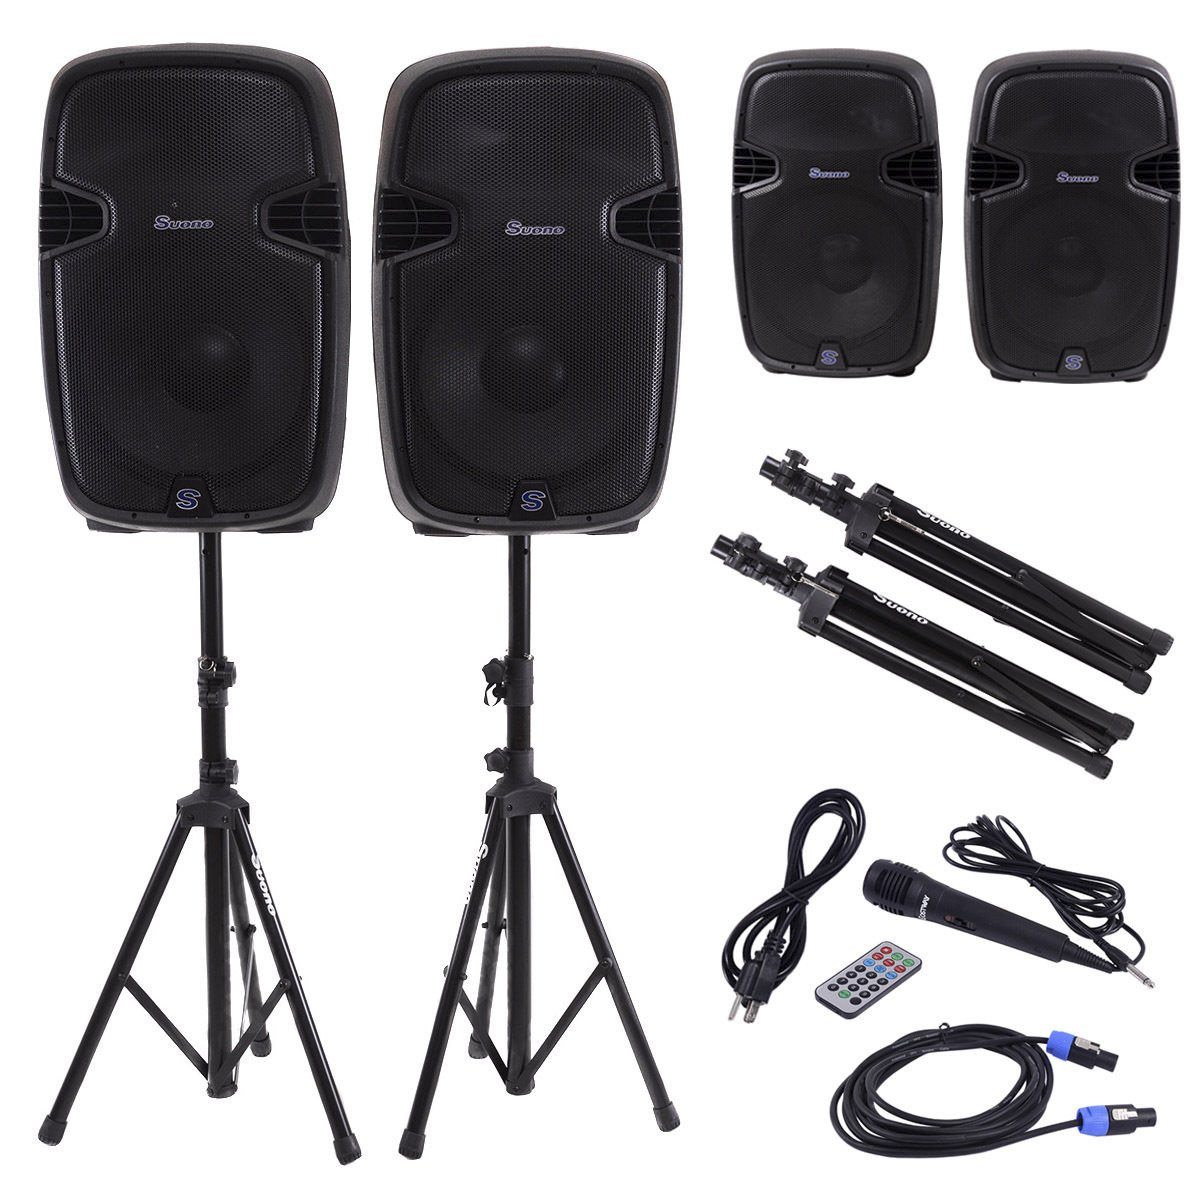 Costway Dual 12 Inch 2-way 2000Watts Powered Speakers with Bluetooth, Mic, Speaker Stands, Control & Cables